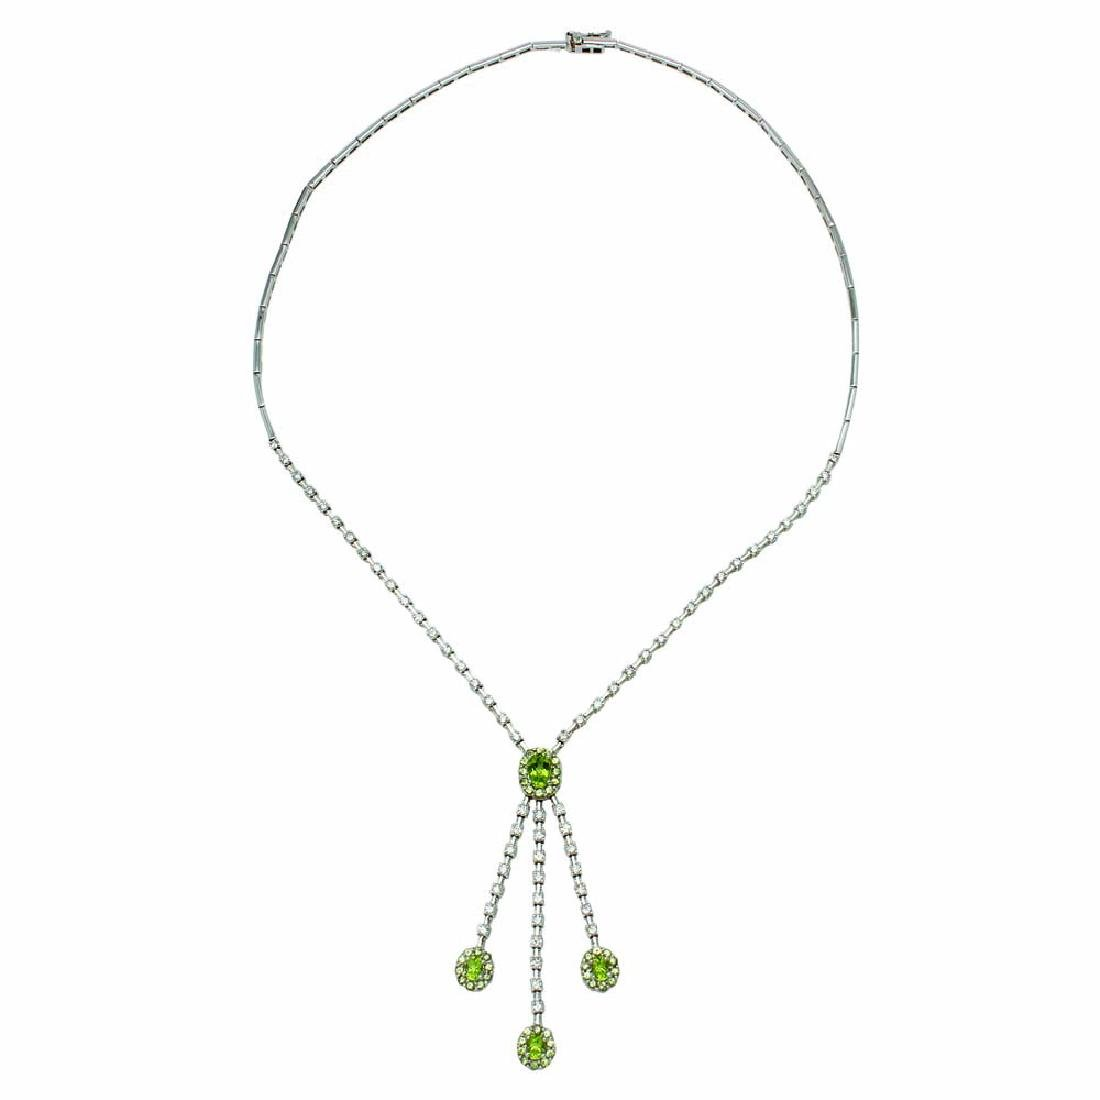 18KT White Gold 1.77ctw Peridot and Diamond Necklace